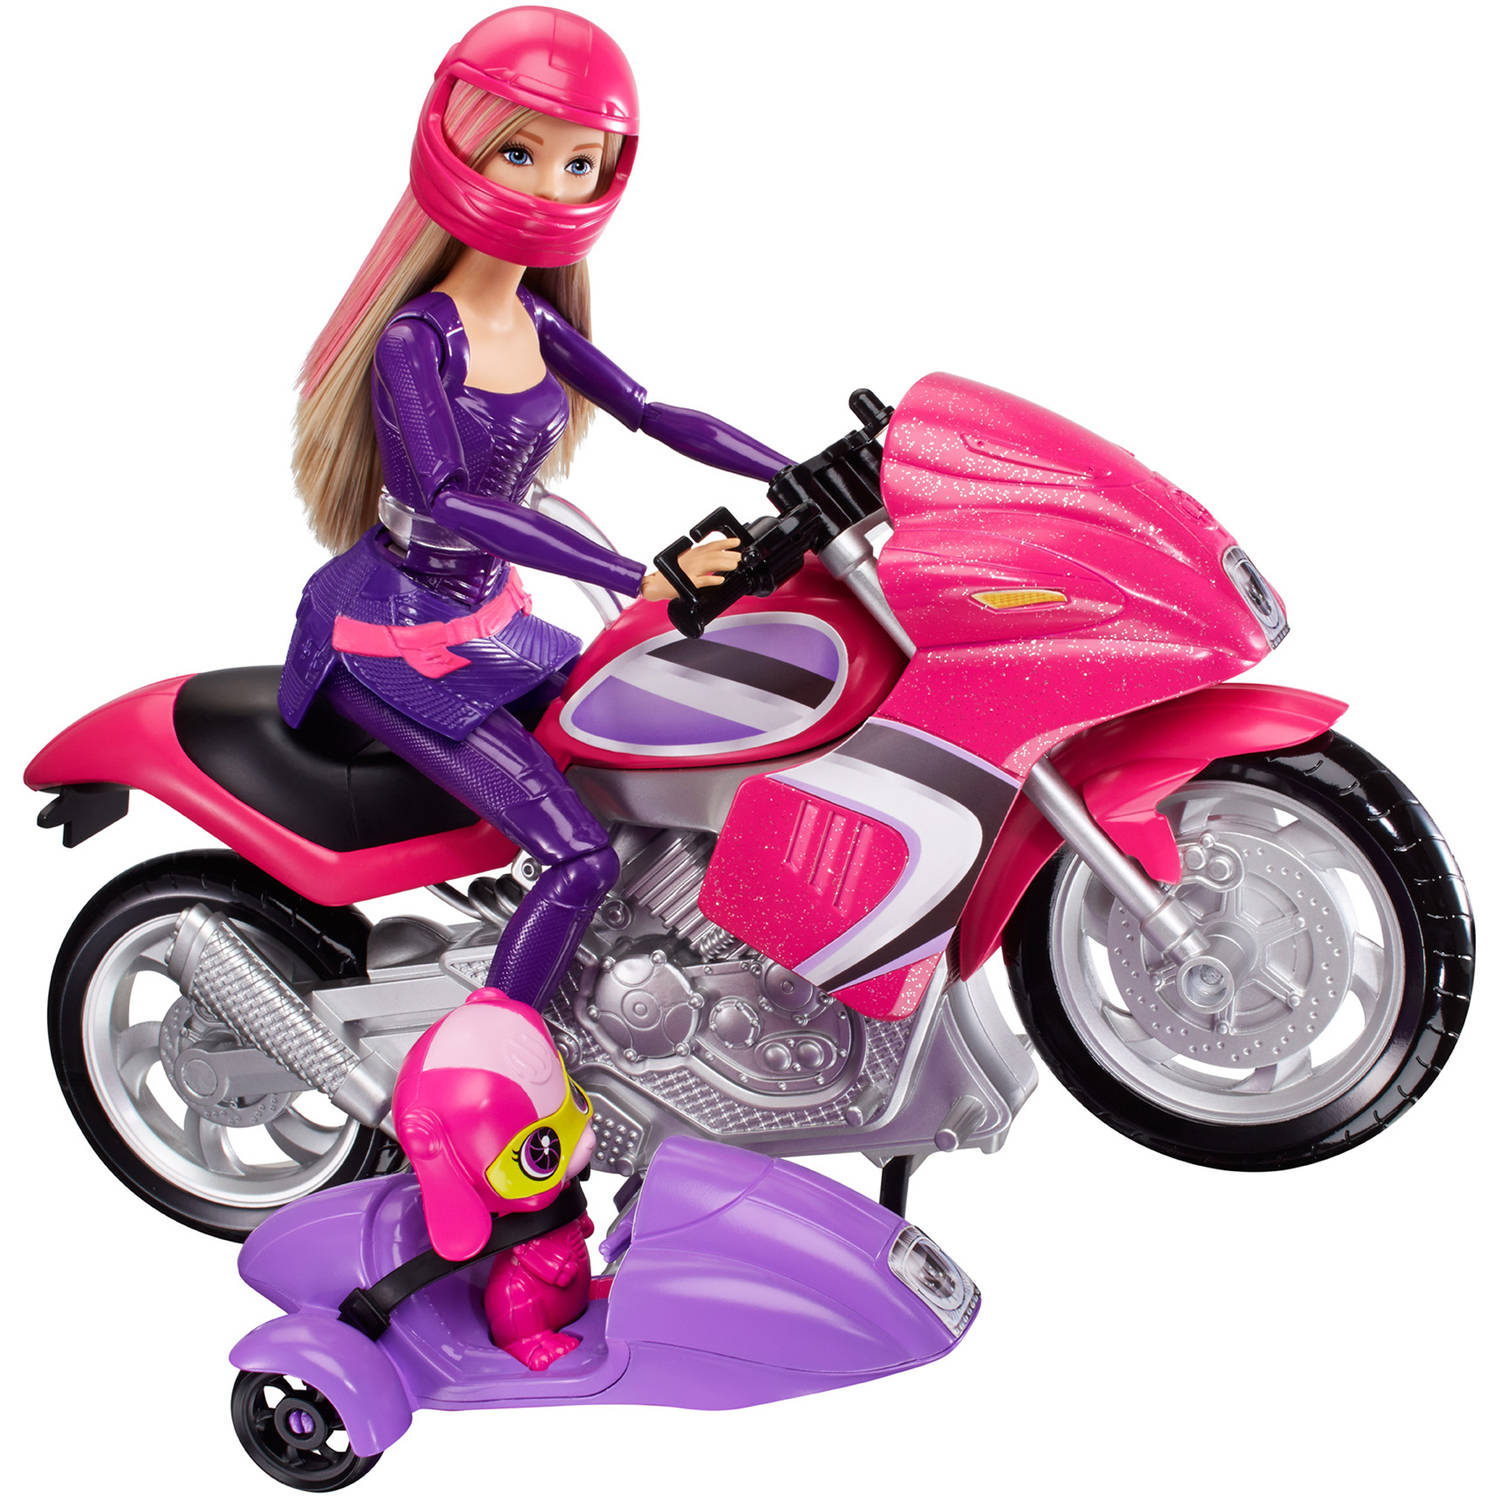 Barbie Spy Squad Secret Agent Motorcyle